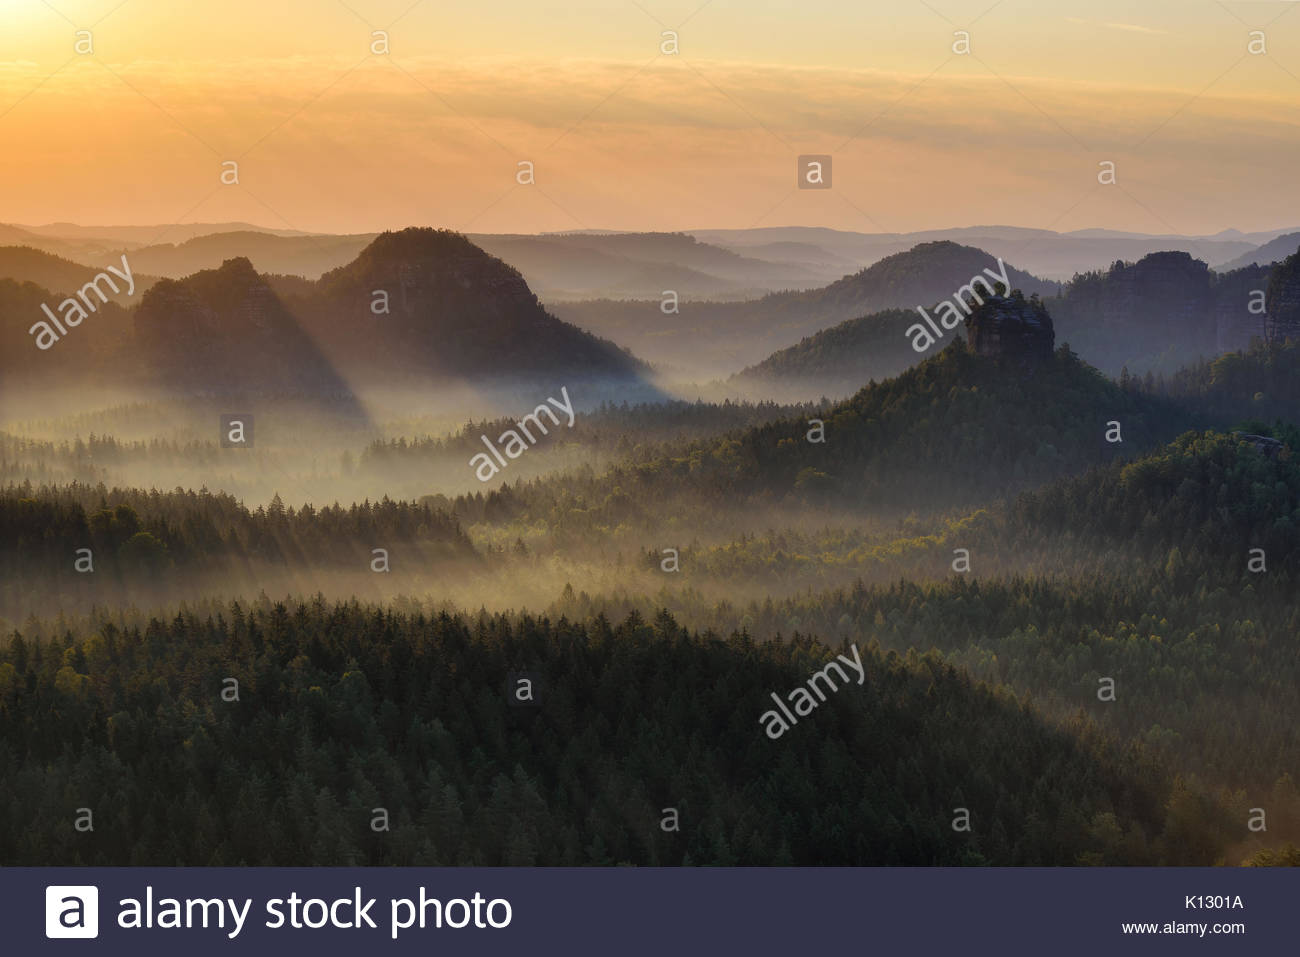 Kleiner Winterberg silhouettes during autumn sunrise, Saxon Switzerland, Germany - Stock Image